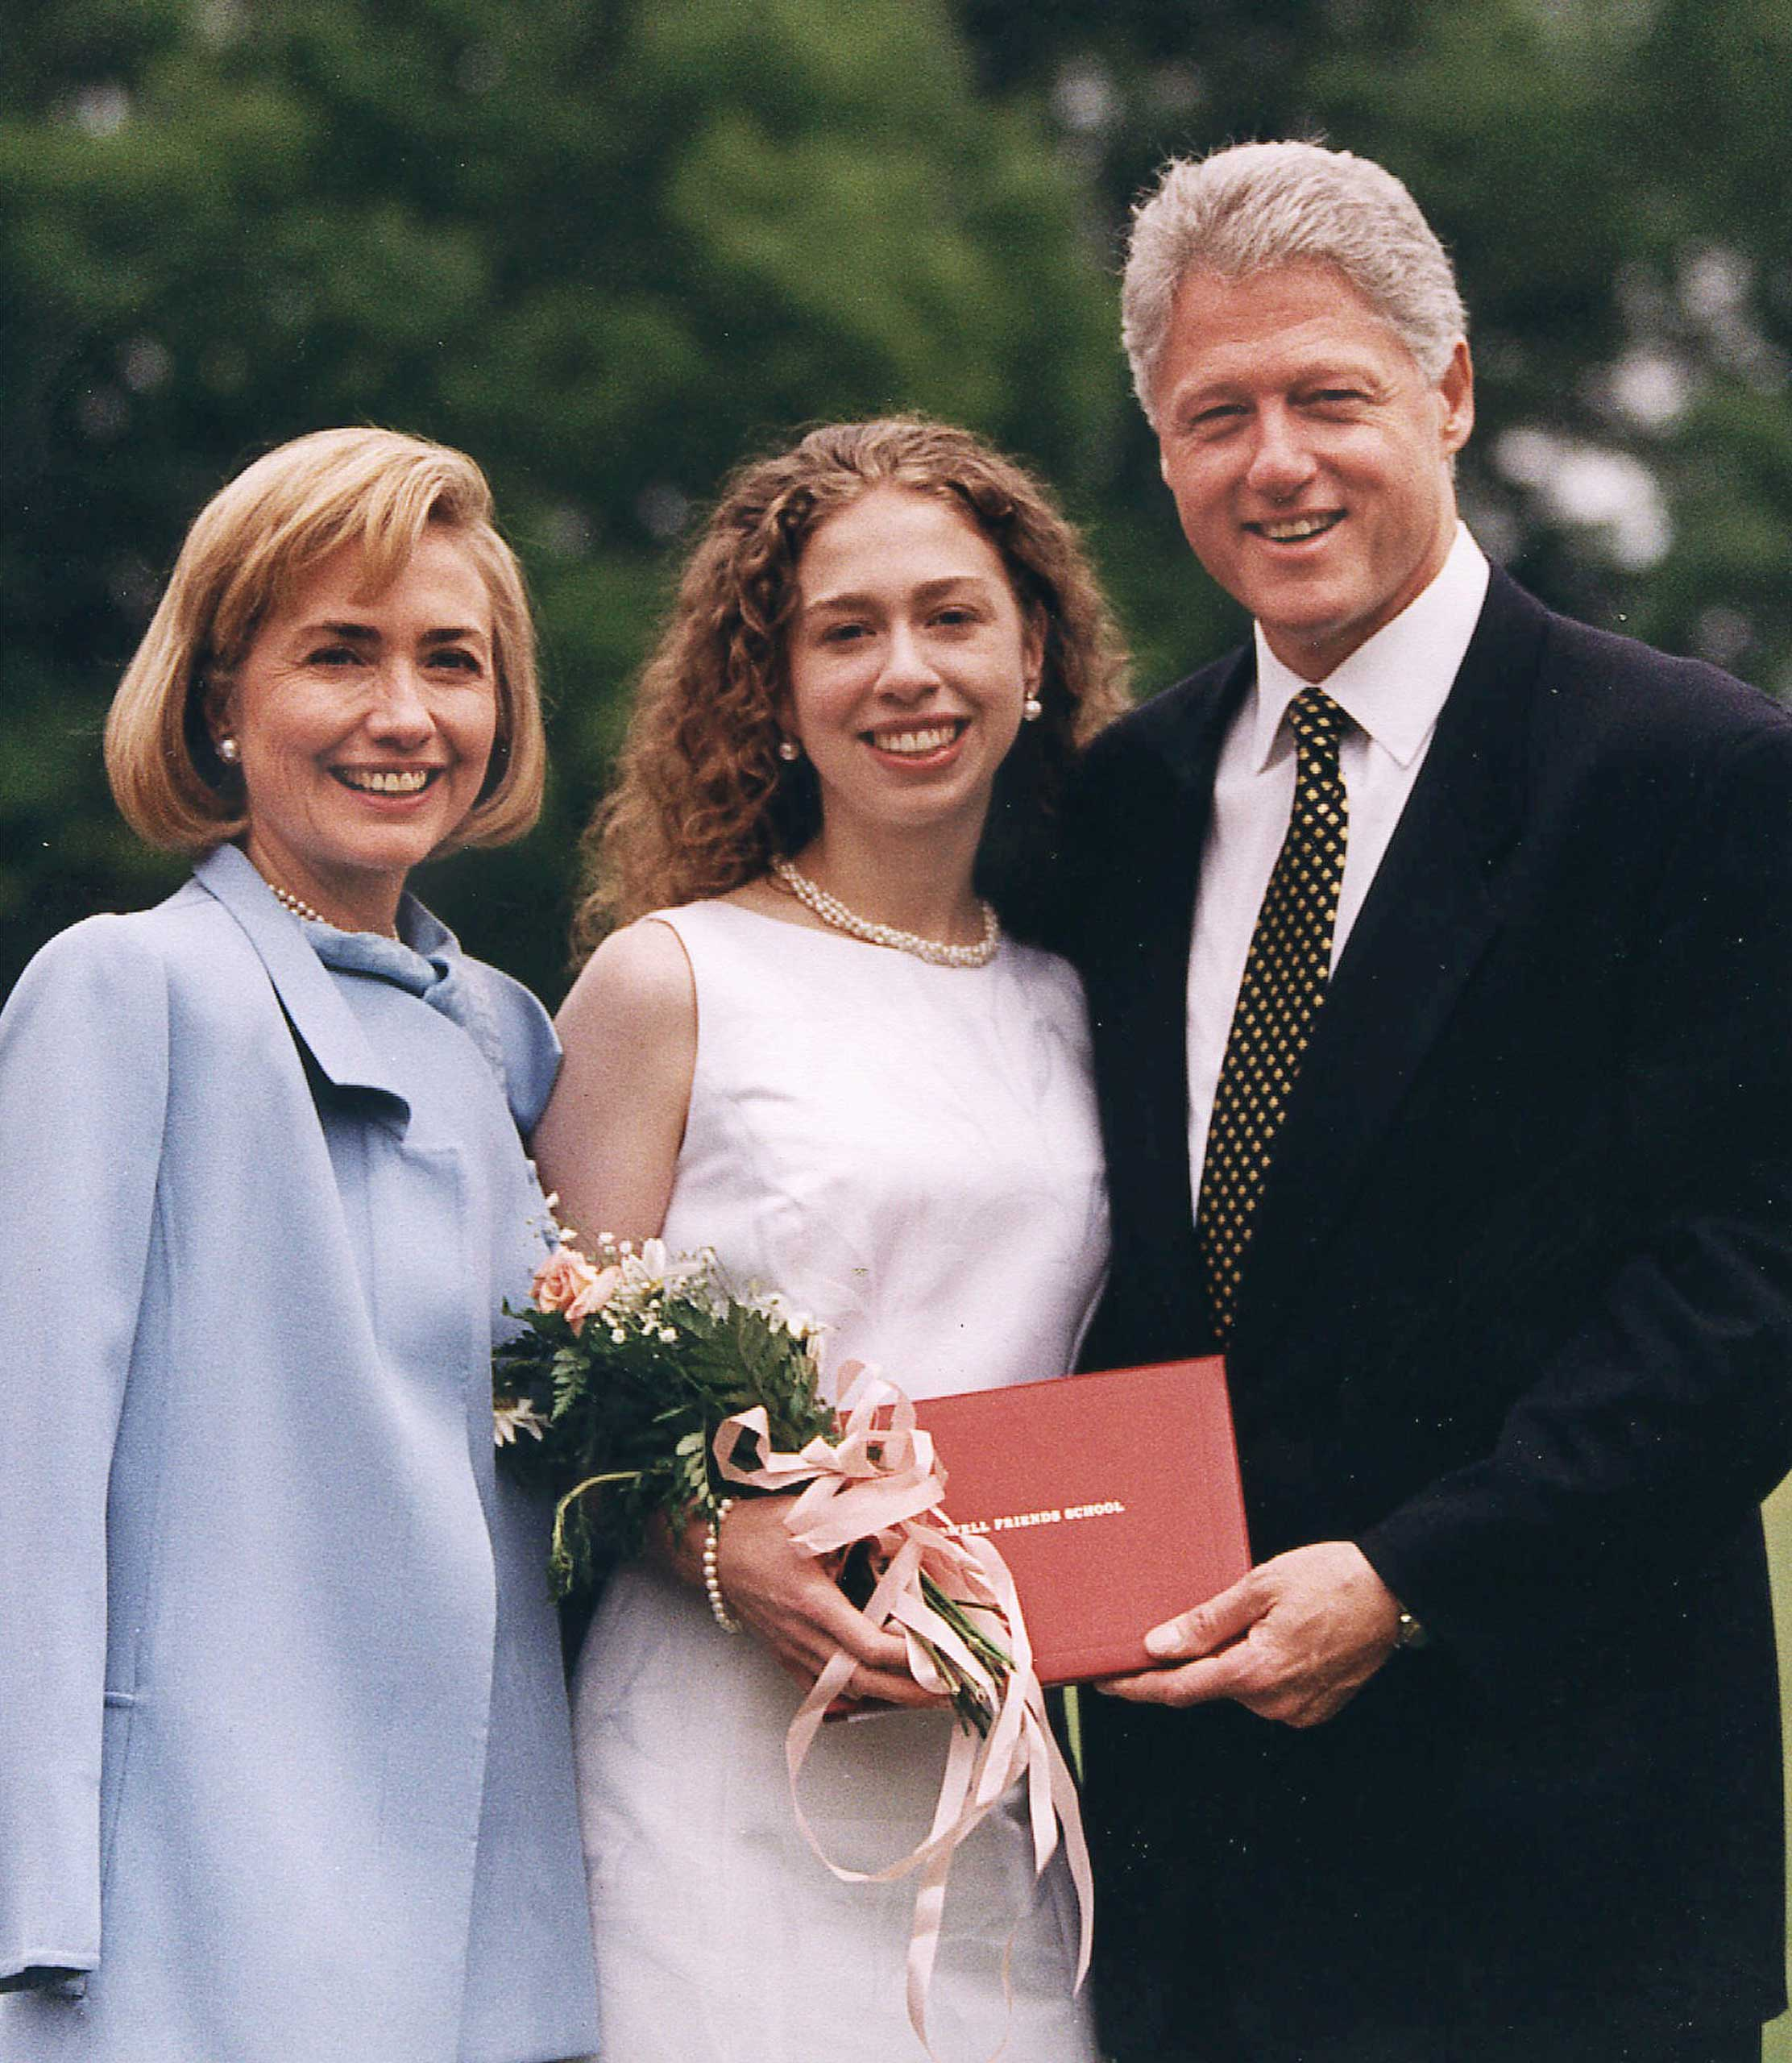 President and Mrs. Clinton stand with their daughter, Chelsea, after her high school graduation ceremony at Sidwell Friends School in Washington on June  6, 1997.